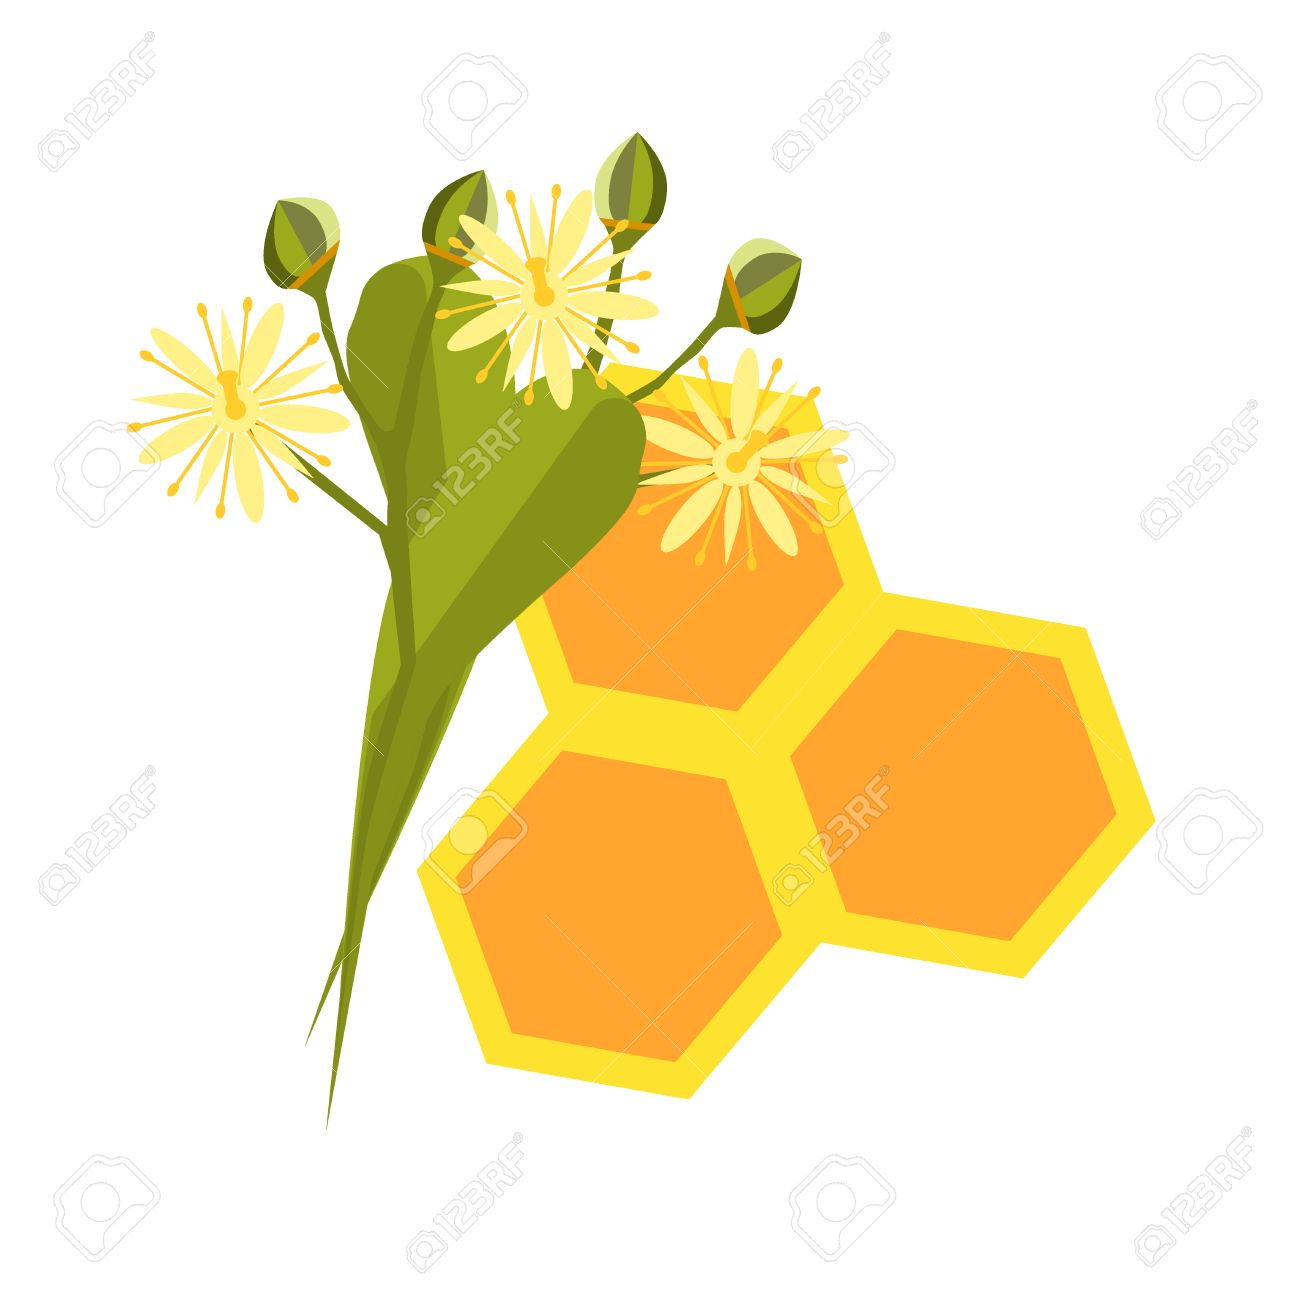 Honeycomb With Flowing Honey Illustration Bee Healthy Orange Hexagon Nature Beeswax Food Beehive